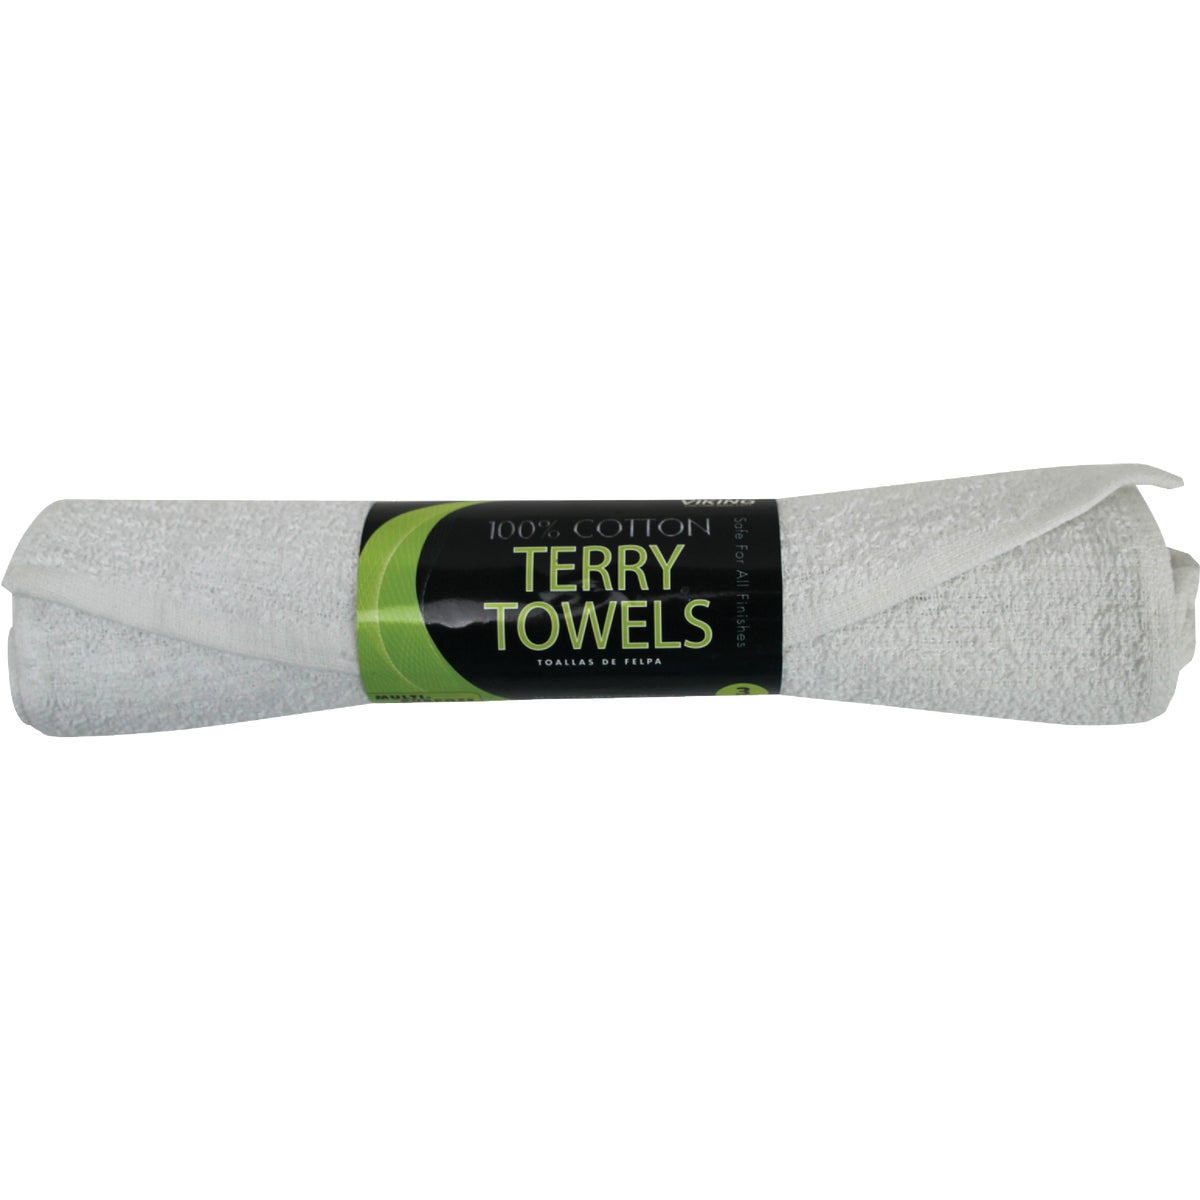 3PK WHITE TERRY TOWELS - 40050 by Carrand Companies